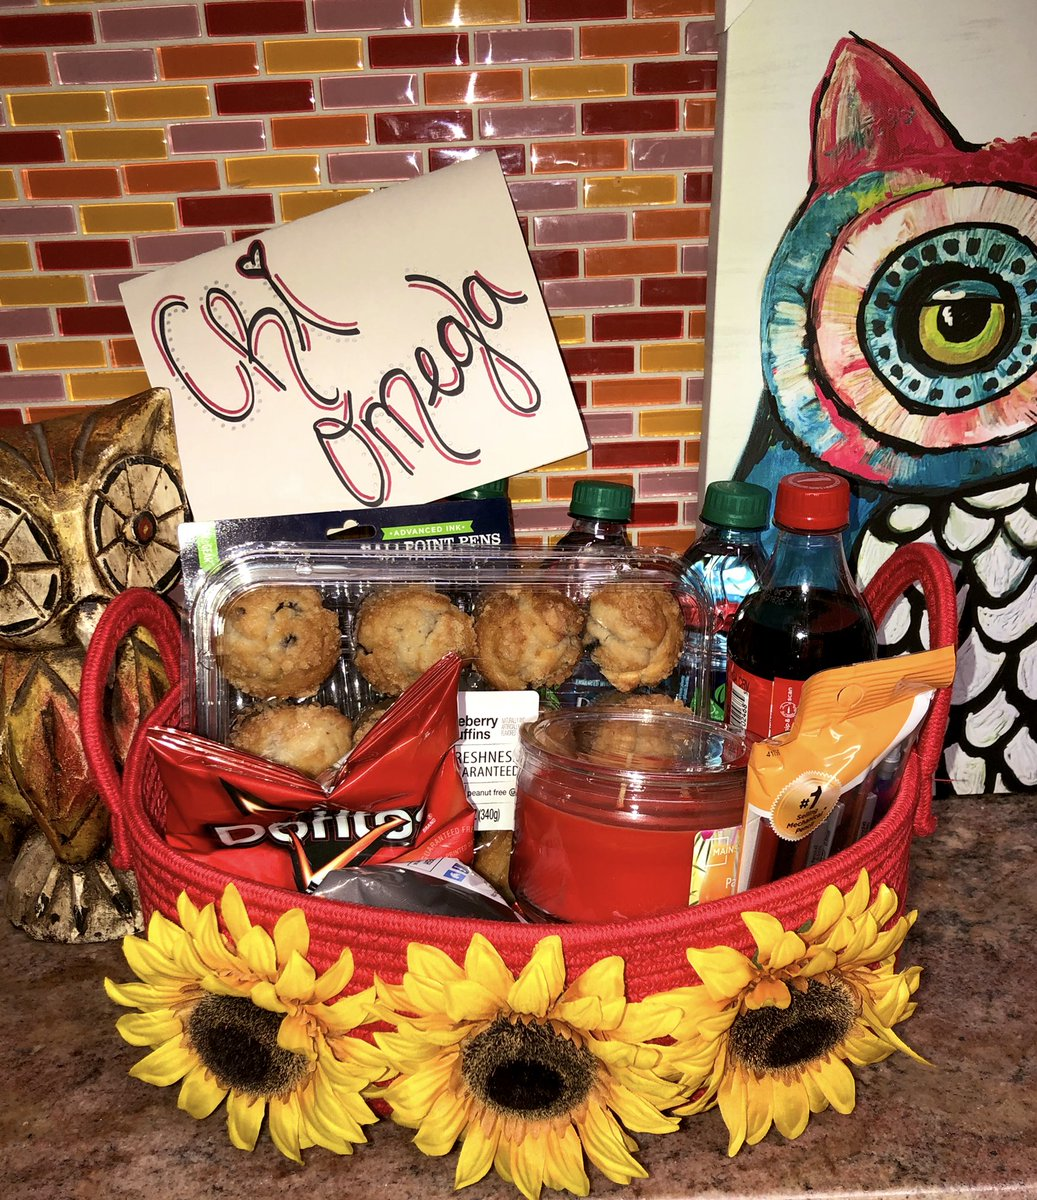 Shoutout to @MWSUTKE for brightening our first week with this awesome gift basket! <br>http://pic.twitter.com/KFD57vzIGk